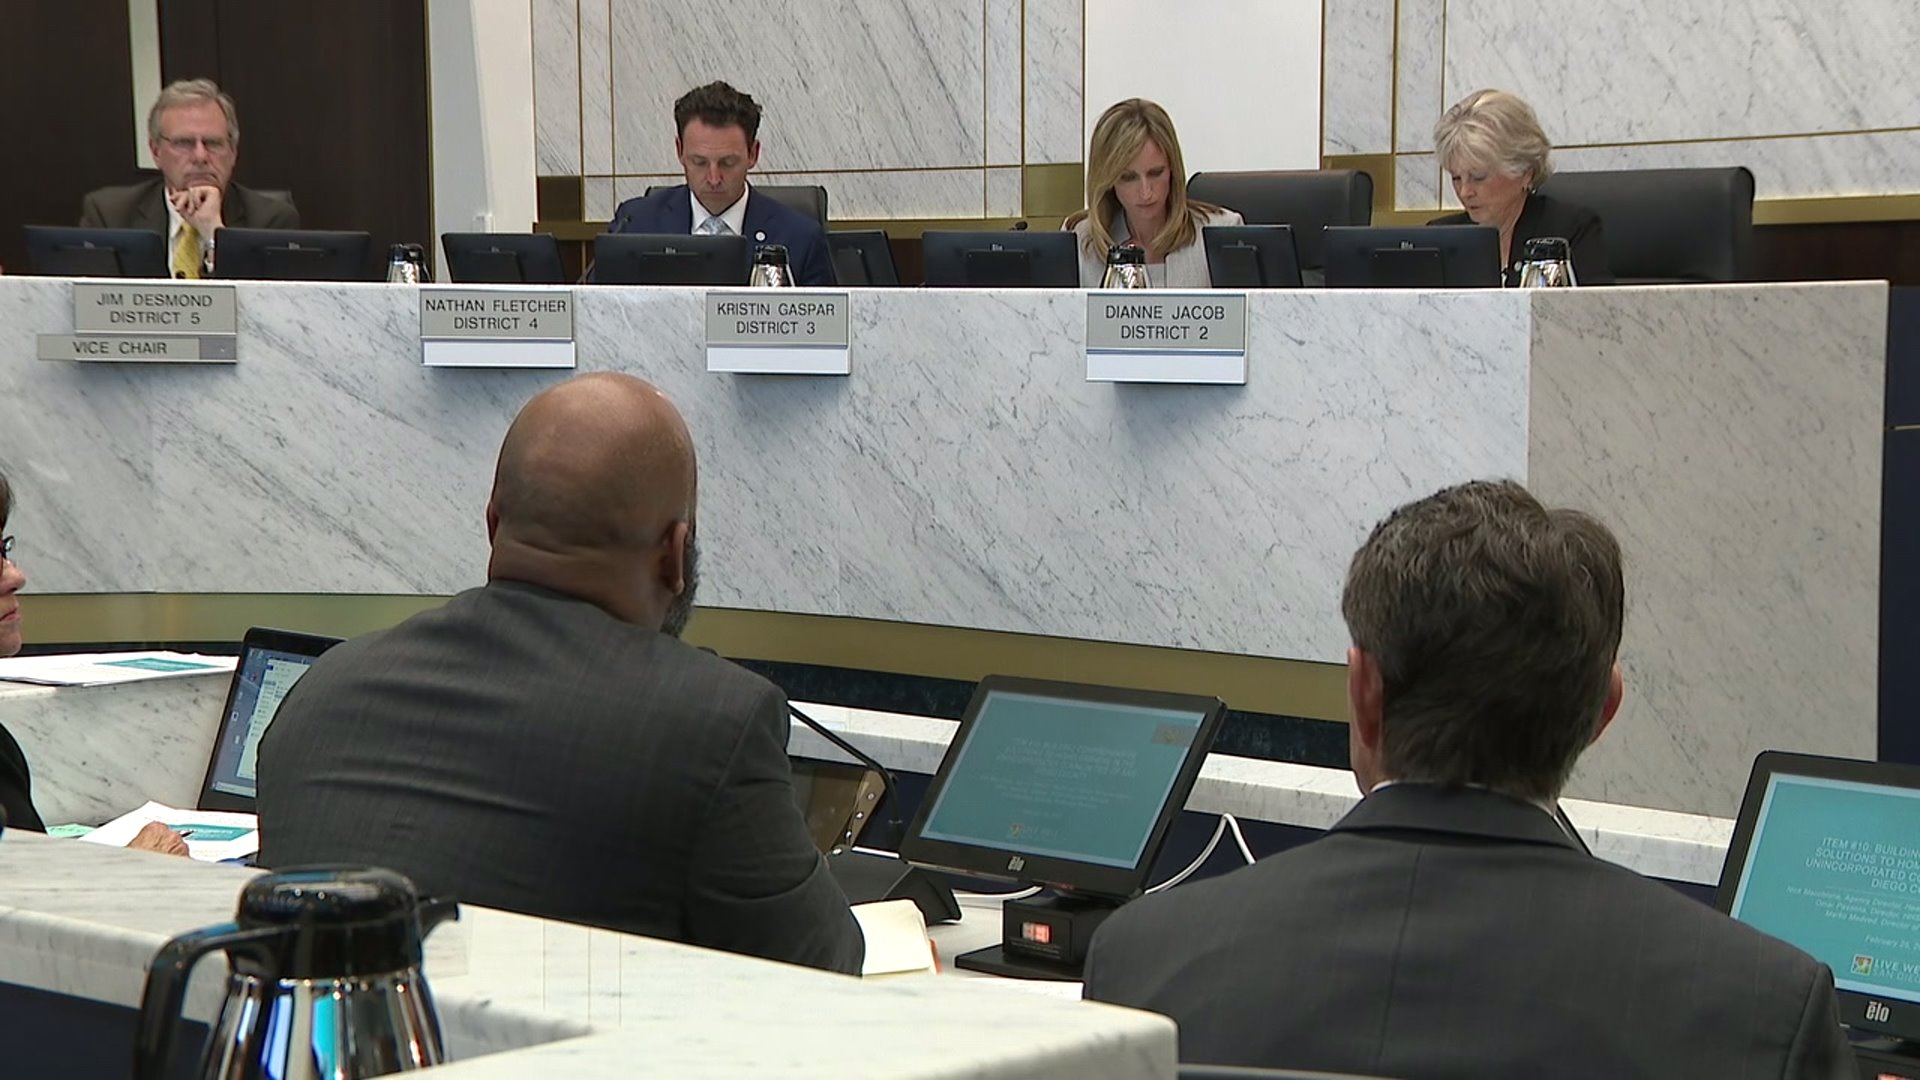 The Board of Supervisors Tuesday approved more assistance to help those seeking shelter in unincorporated regions of San Diego County, including an expanded hotel/motel voucher program.